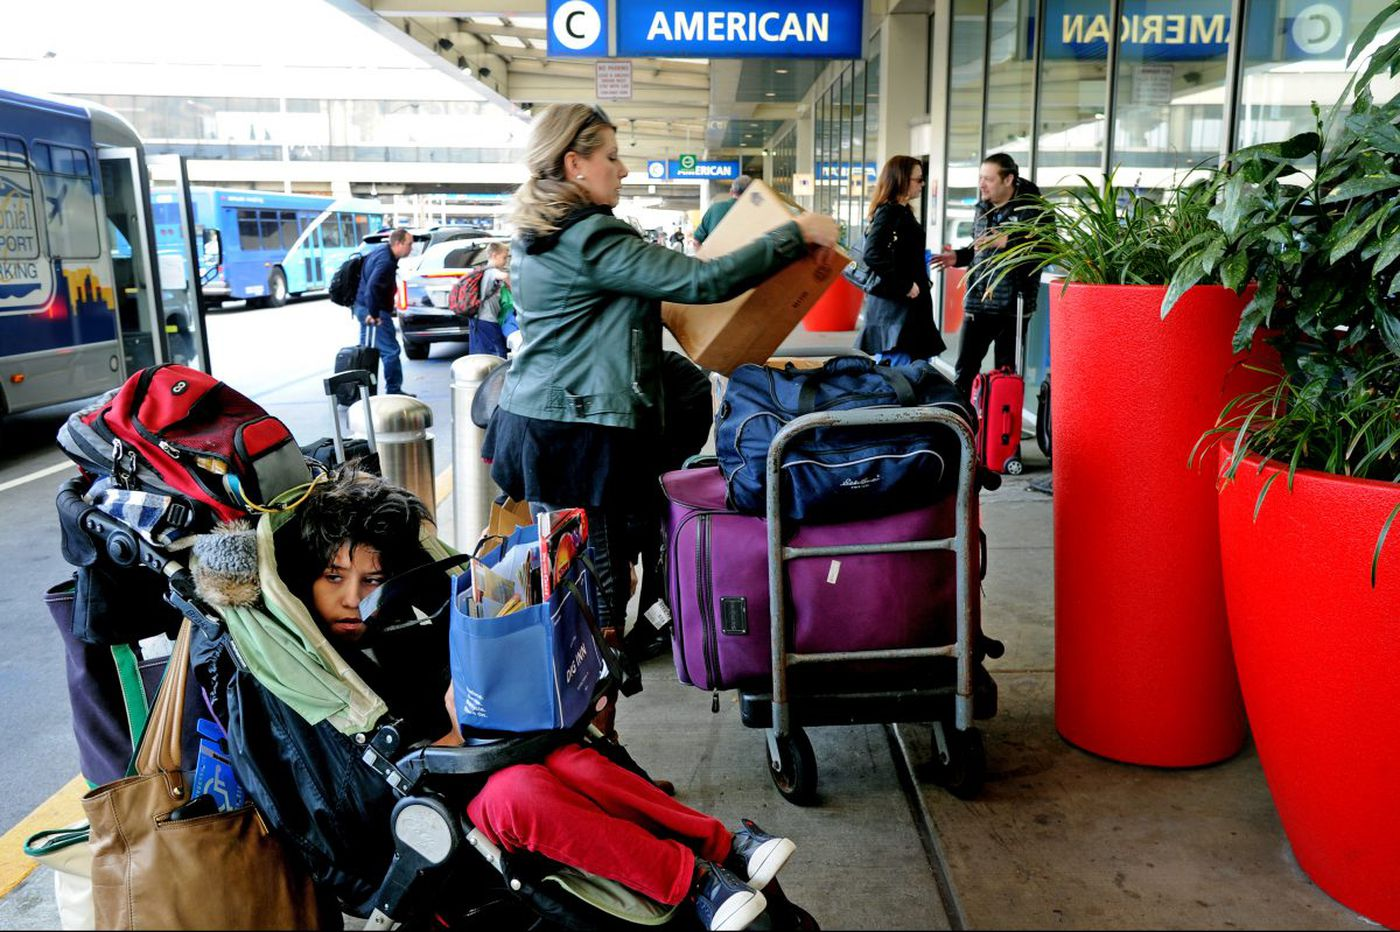 U.S. airports want to nearly double passenger user fees added to ticket prices; airlines say 'no'